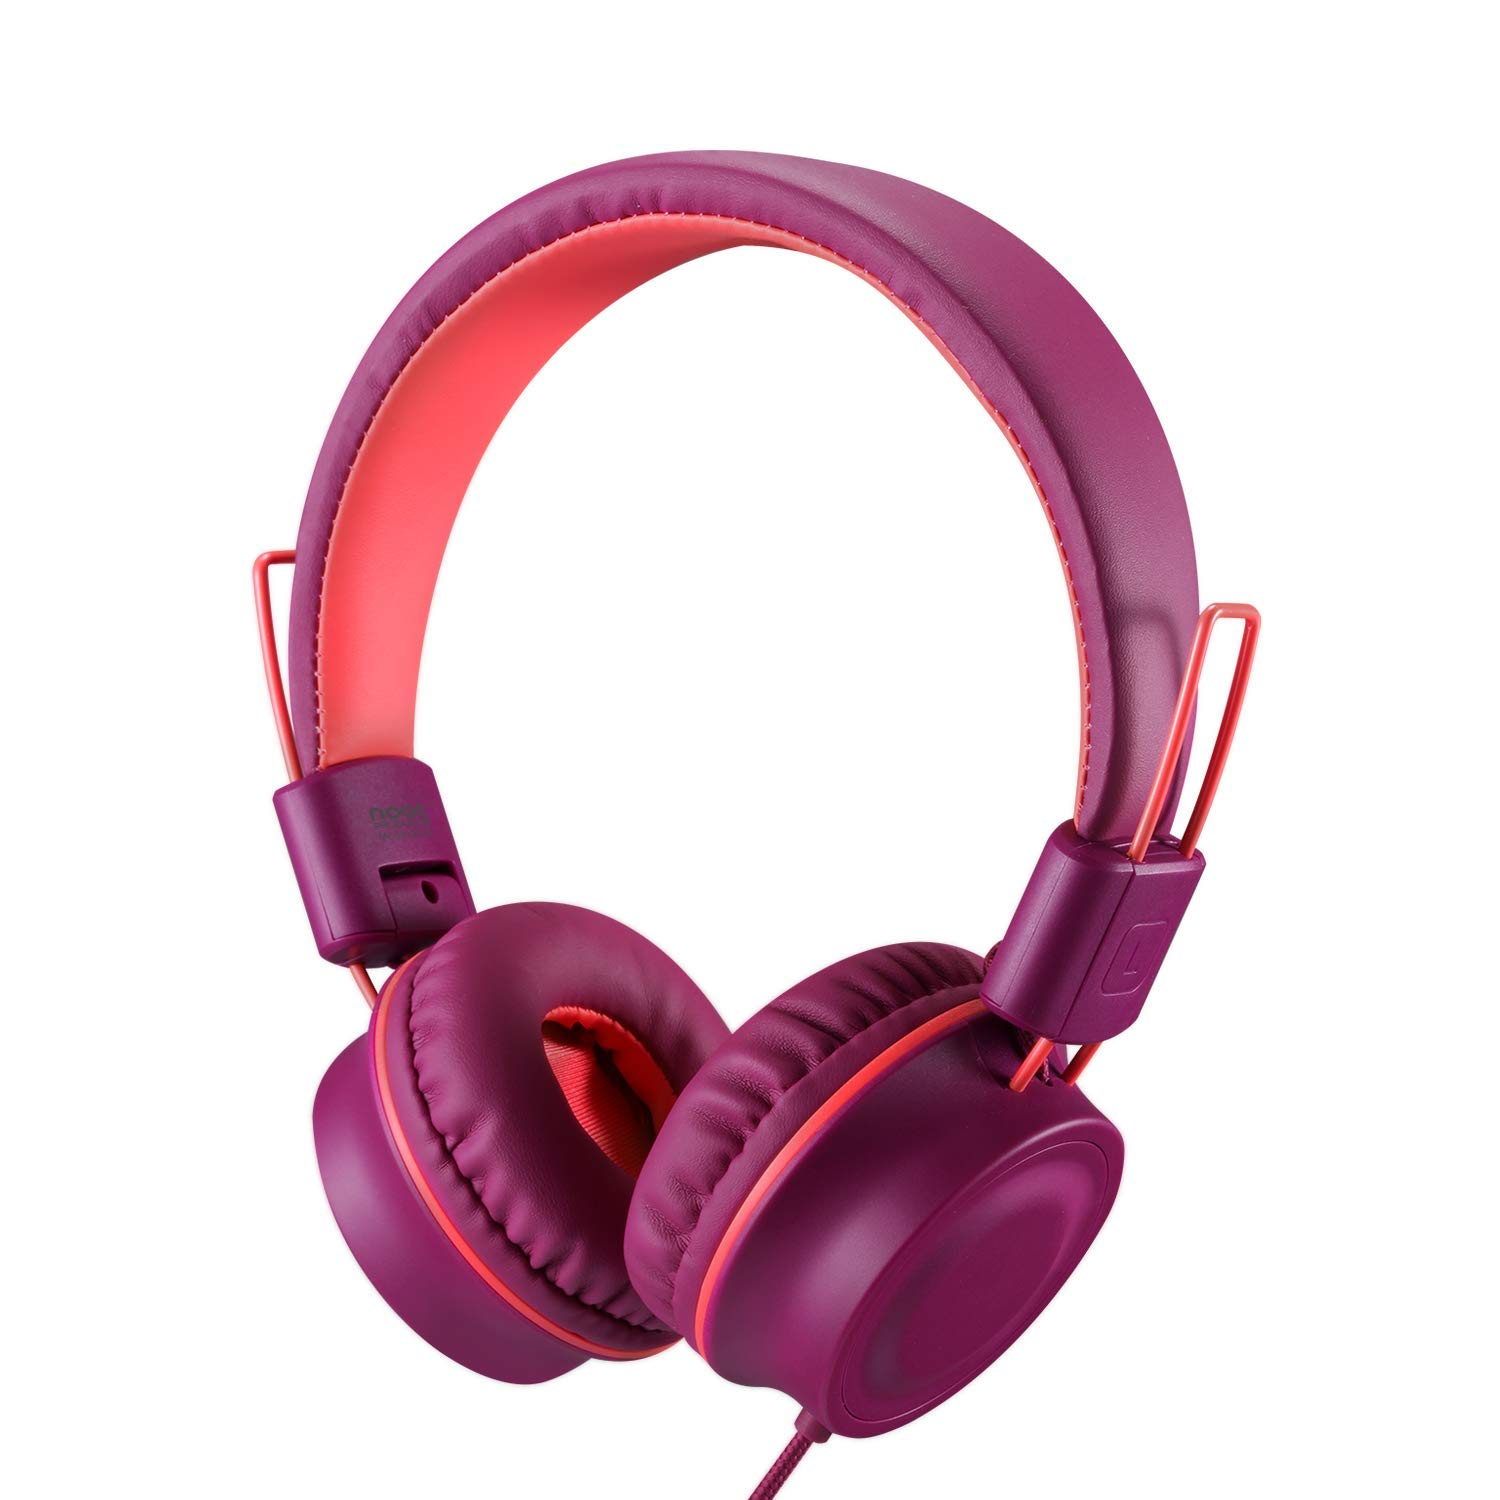 Kids Headphones-noot products K33 Foldable Stereo Tangle-Free 3.5mm Jack Wired Cord On-Ear Headset for Children/Teens/Boys/Girls/Smartphones/School/Kindle/Airplane Travel/Plane/Table(Plum)